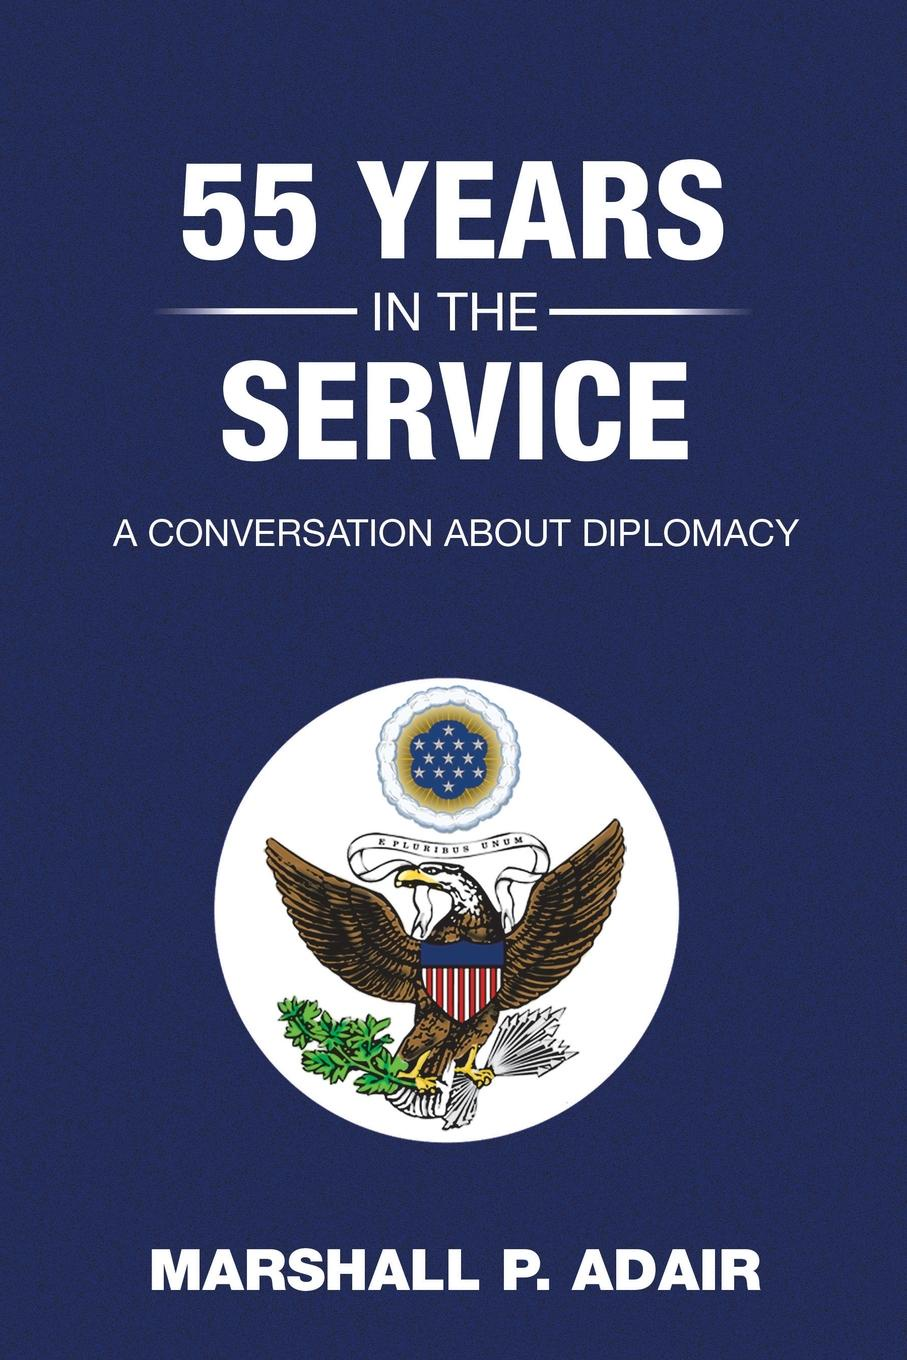 Marshall P. Adair 55 Years in the Service. A Conversation about Diplomacy with Marshall P. Adair bethenia owens adair dr owens adair some of her life experiences